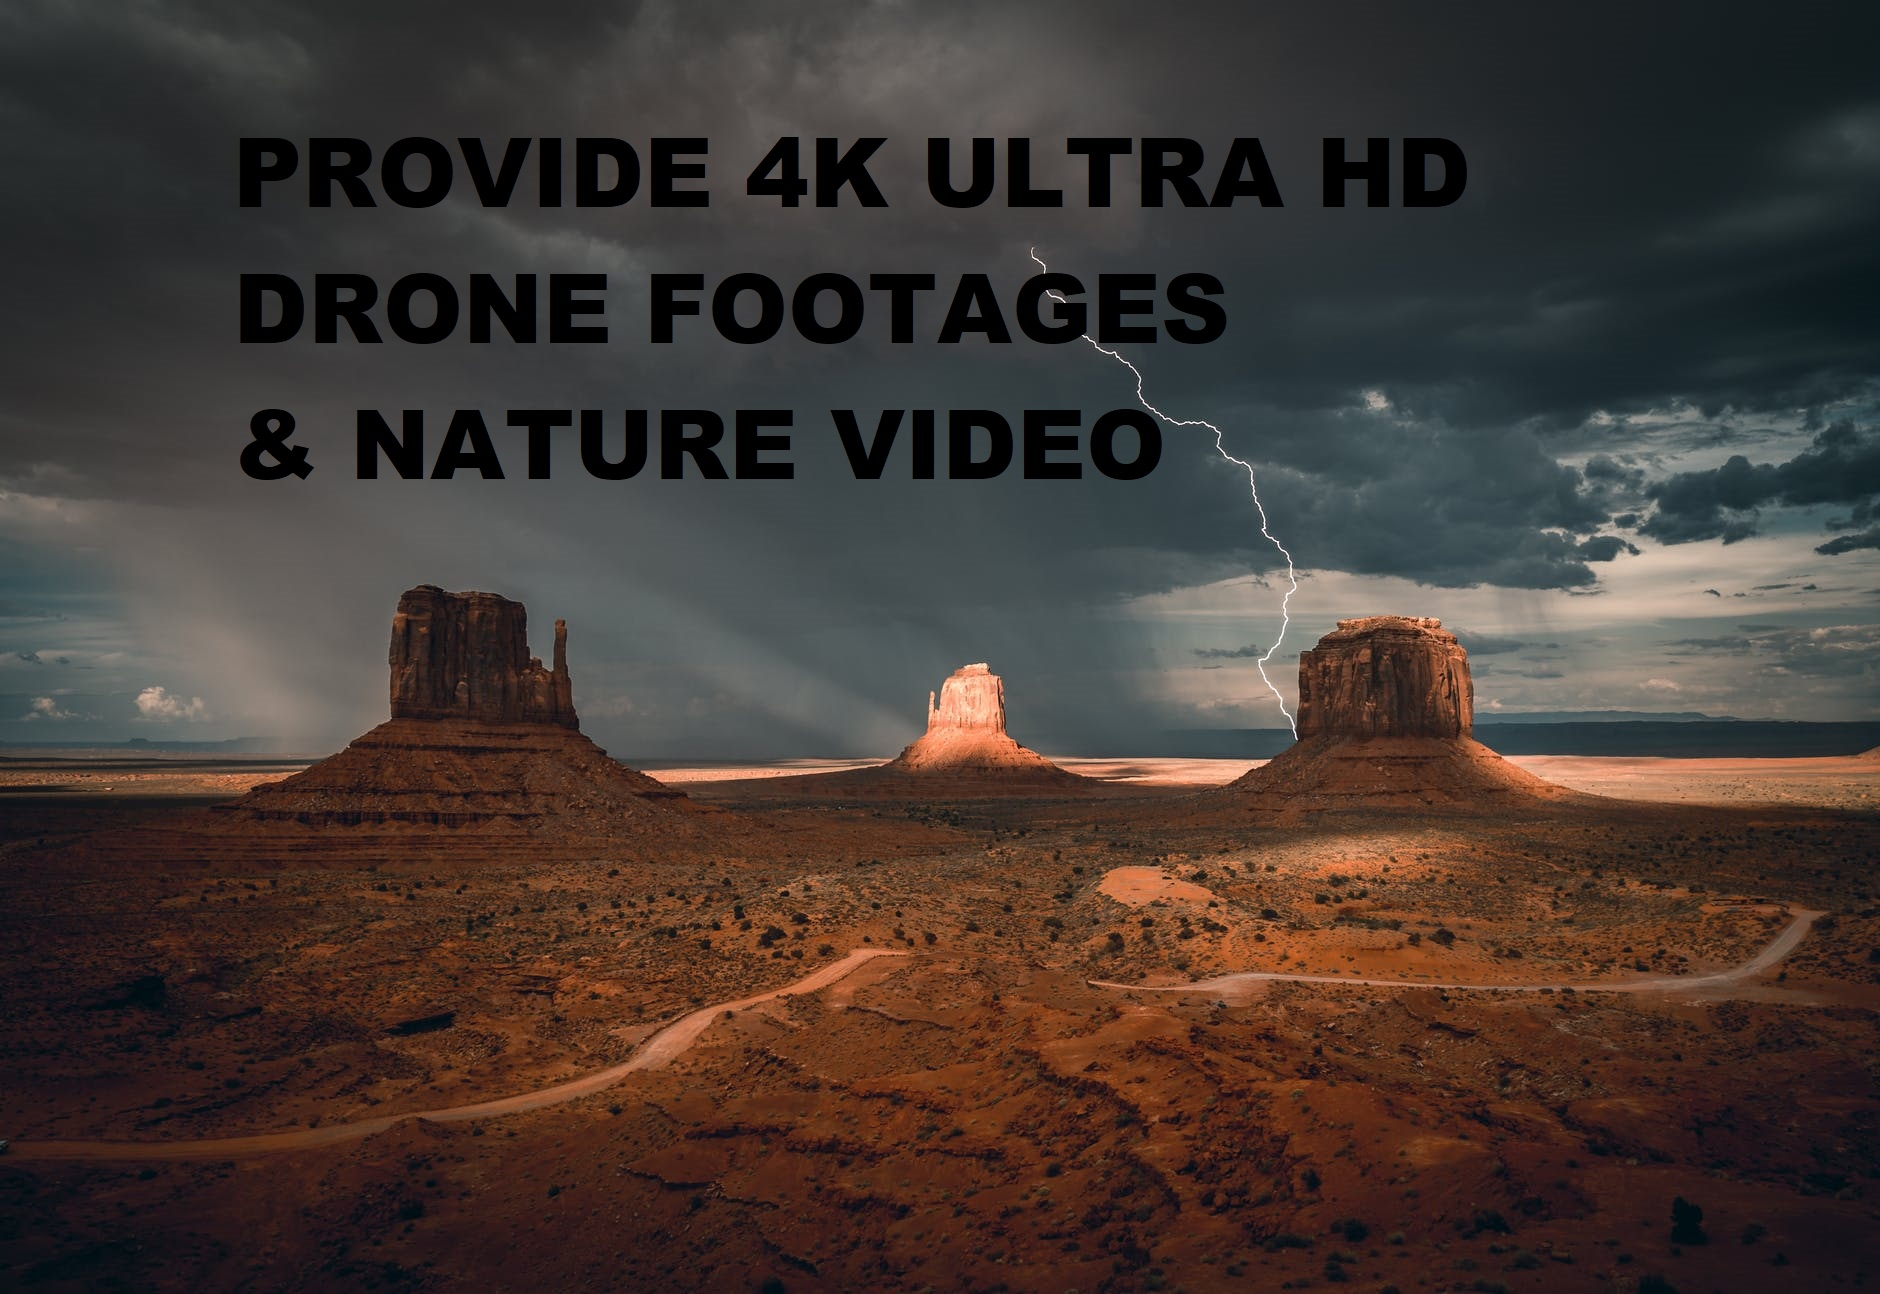 I will provide 300 VIDEO footage with 4k resolution, FiverrBox